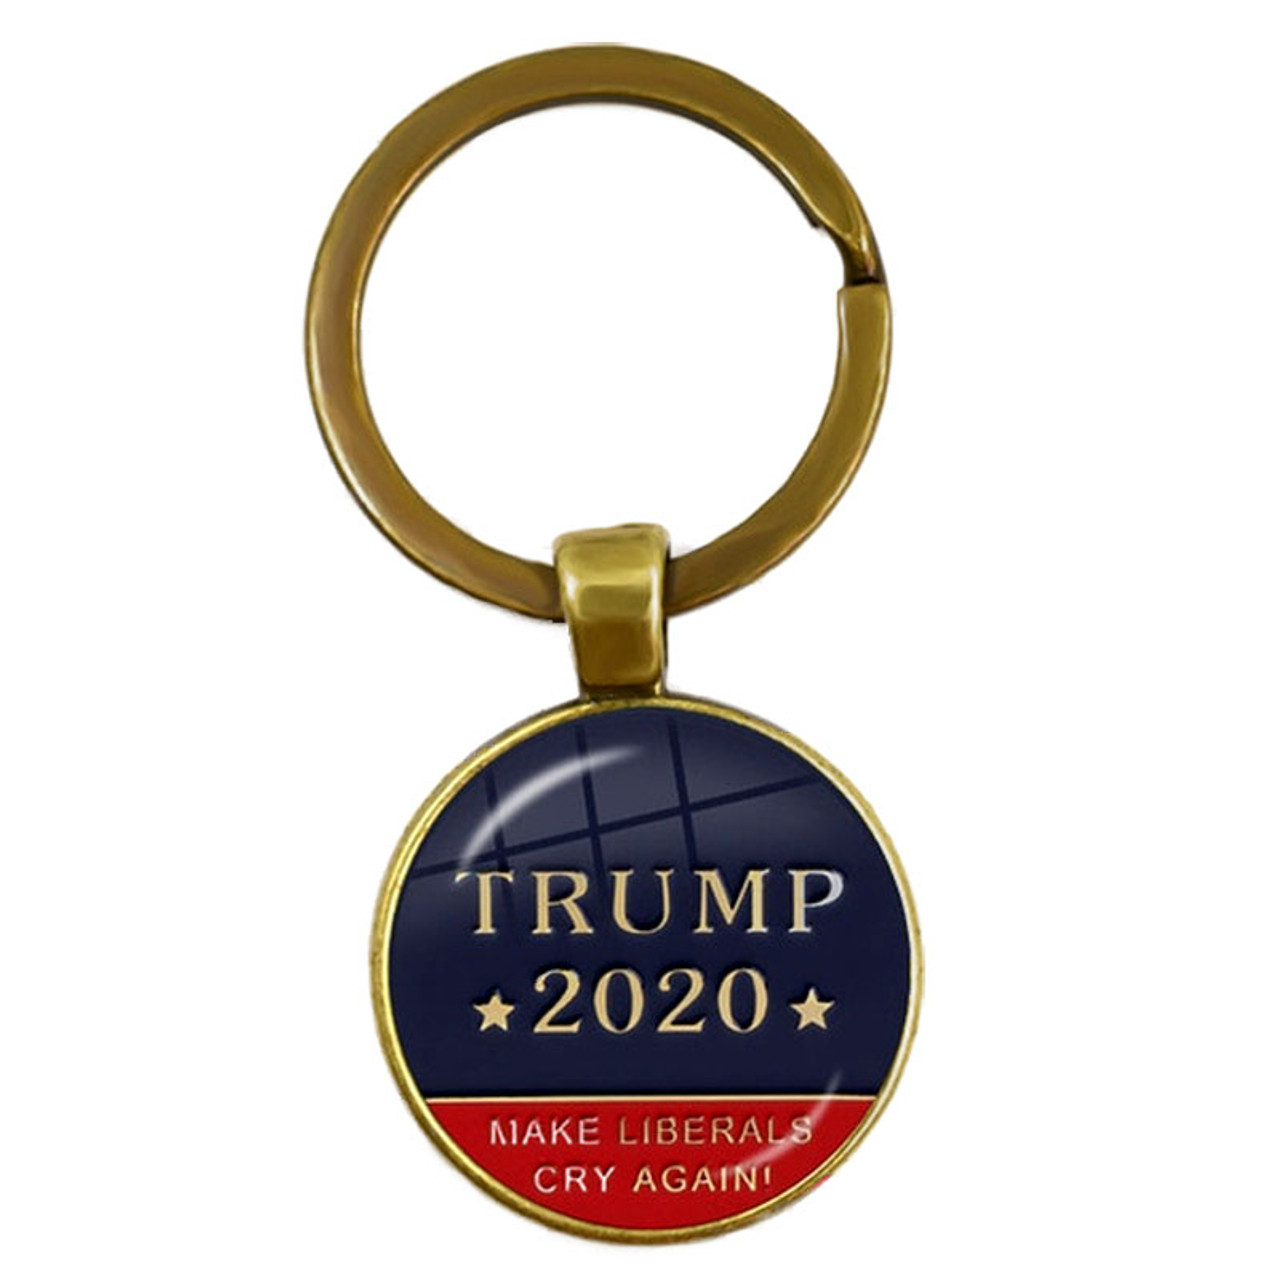 Trump 2020 Keychain Make Liberals Cry Again